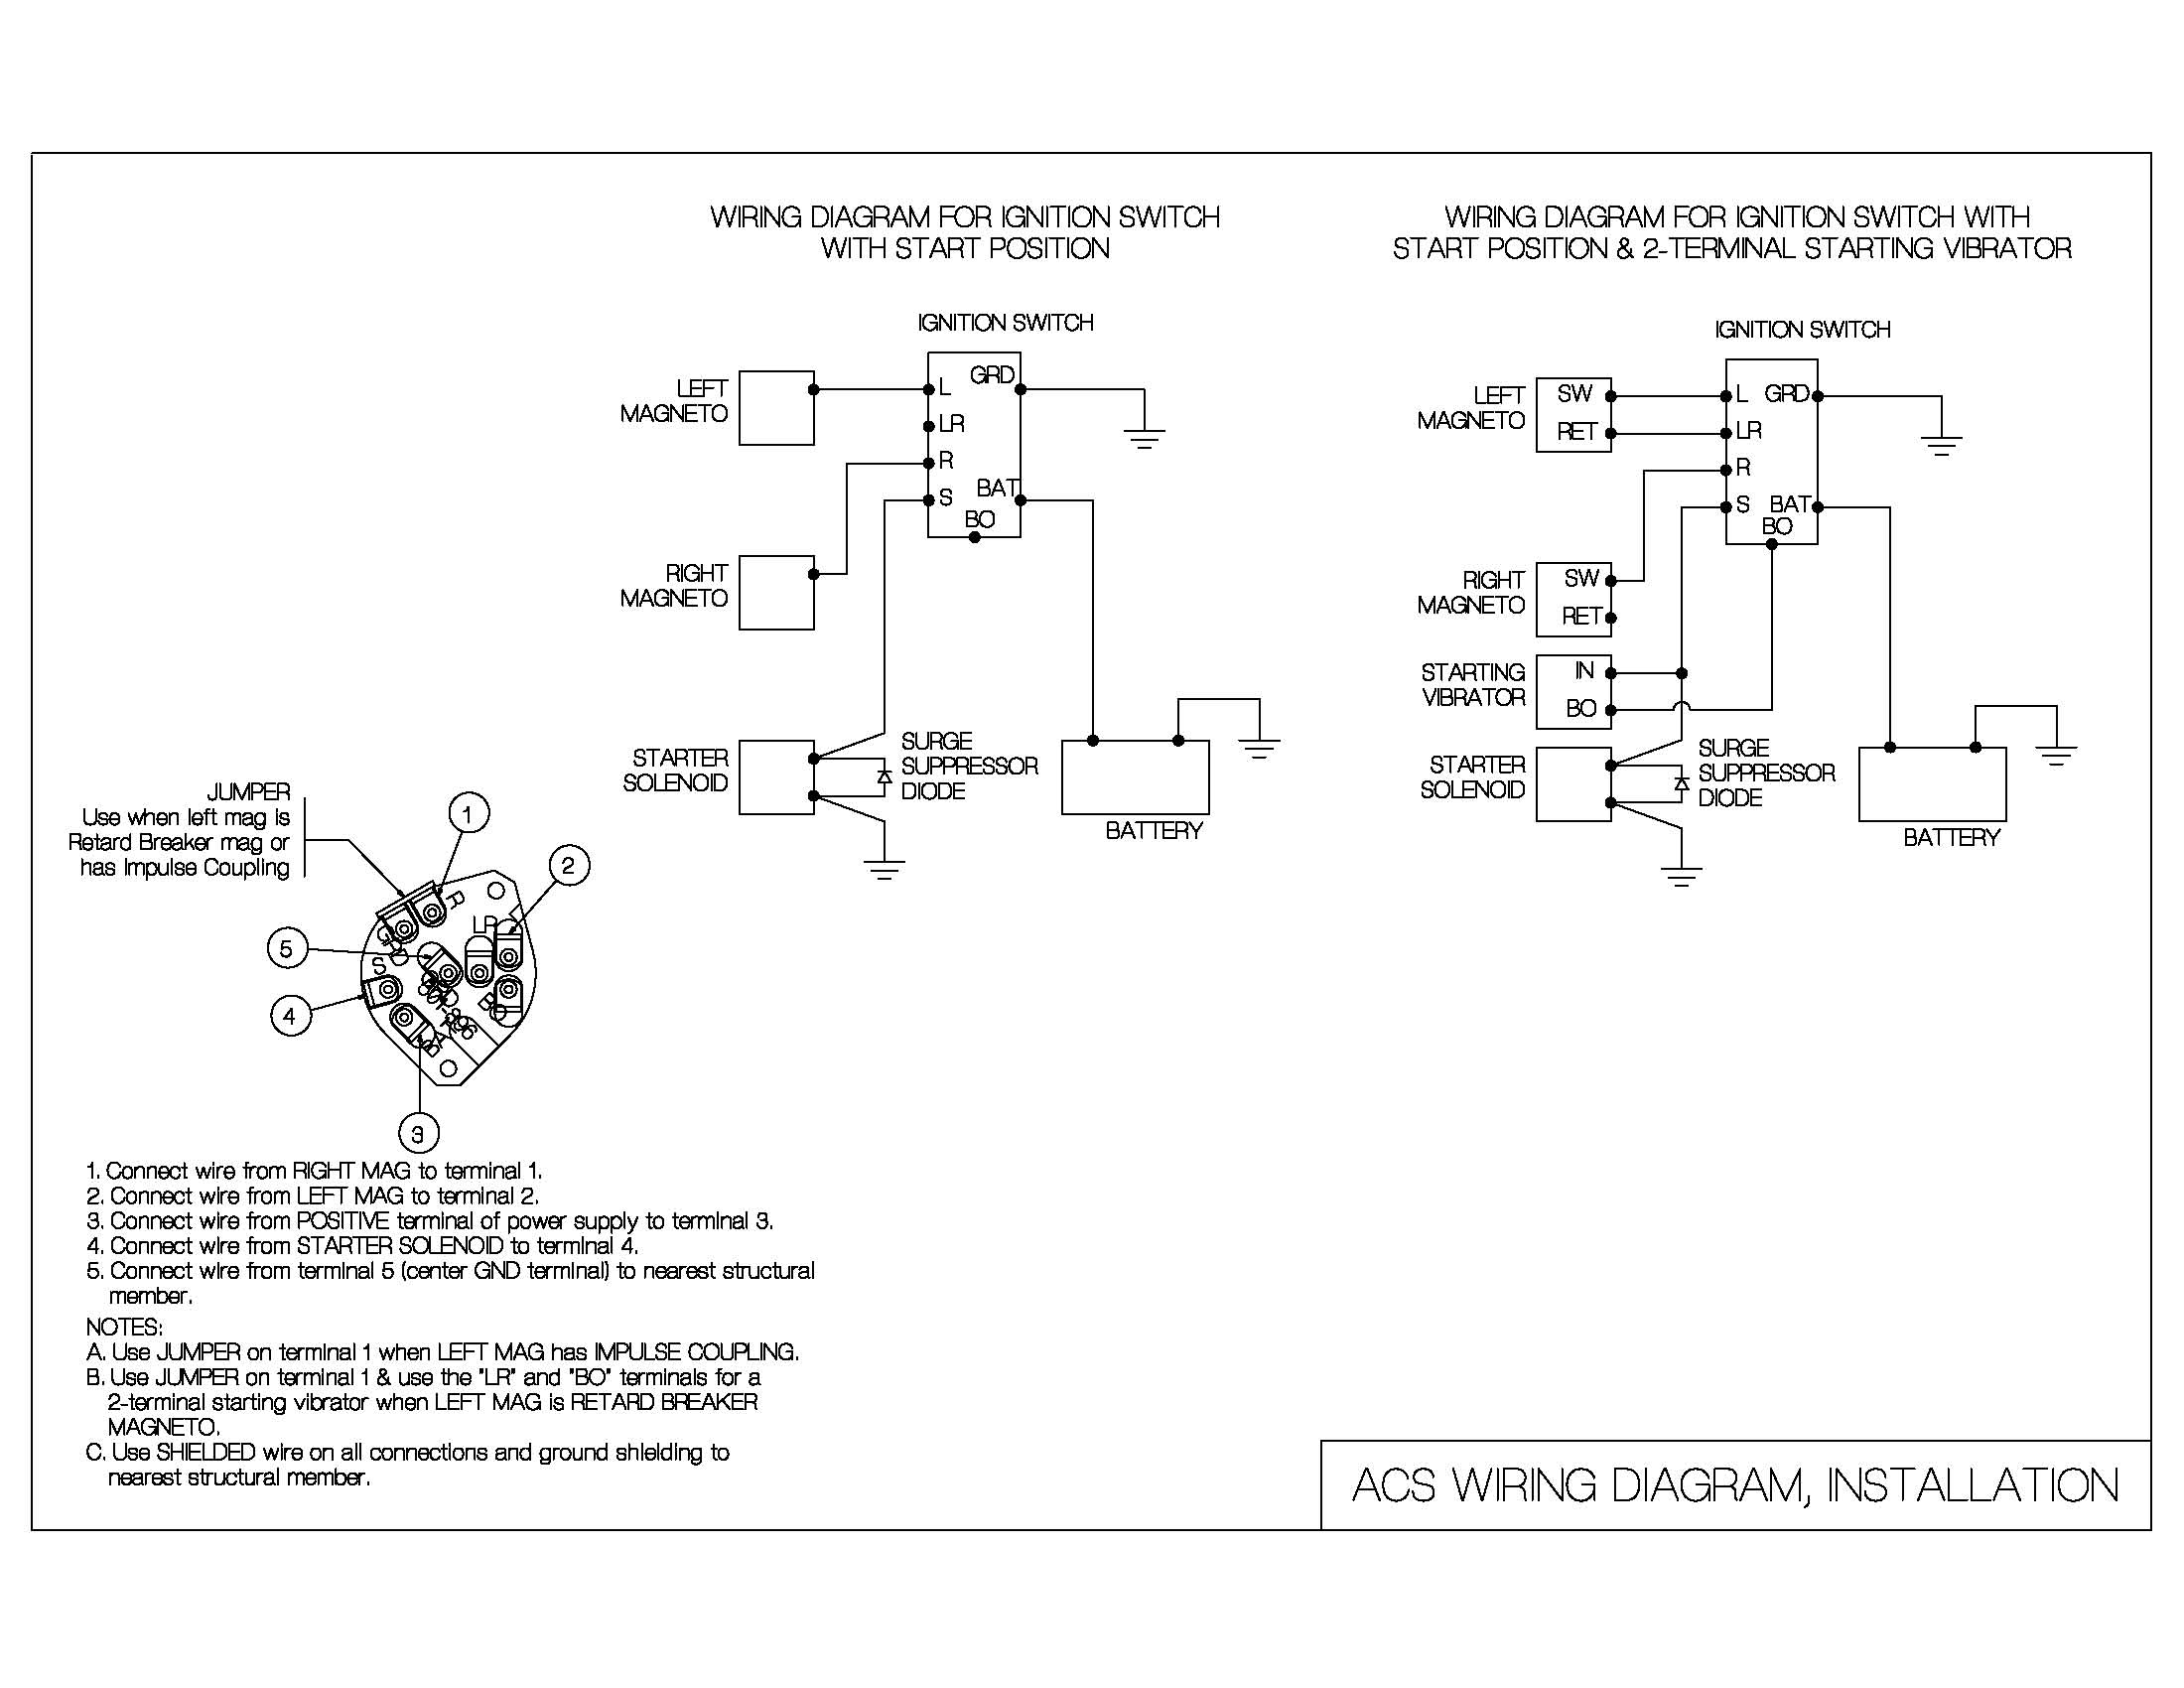 Wiring Diagram ignition switch wiring diagram acs products company terex hd1000 wiring diagram at aneh.co